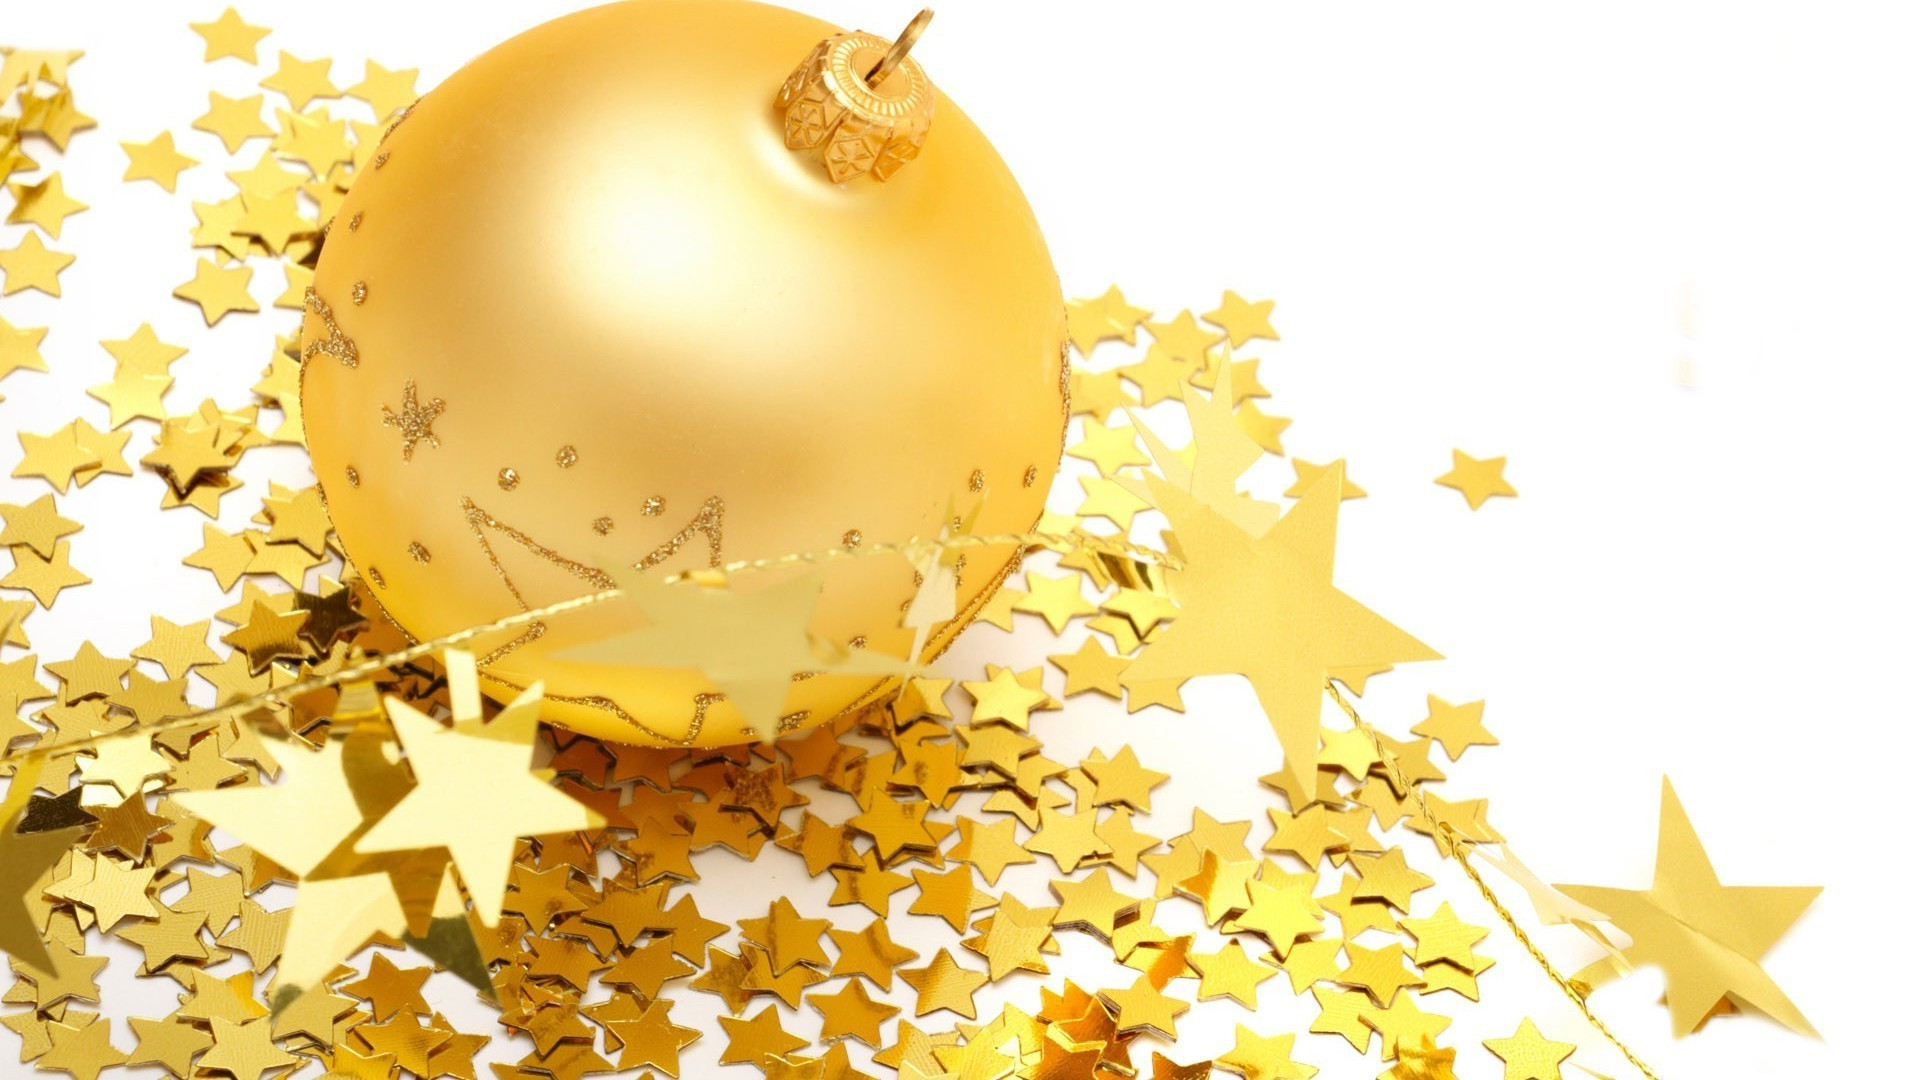 Gold ball and stars